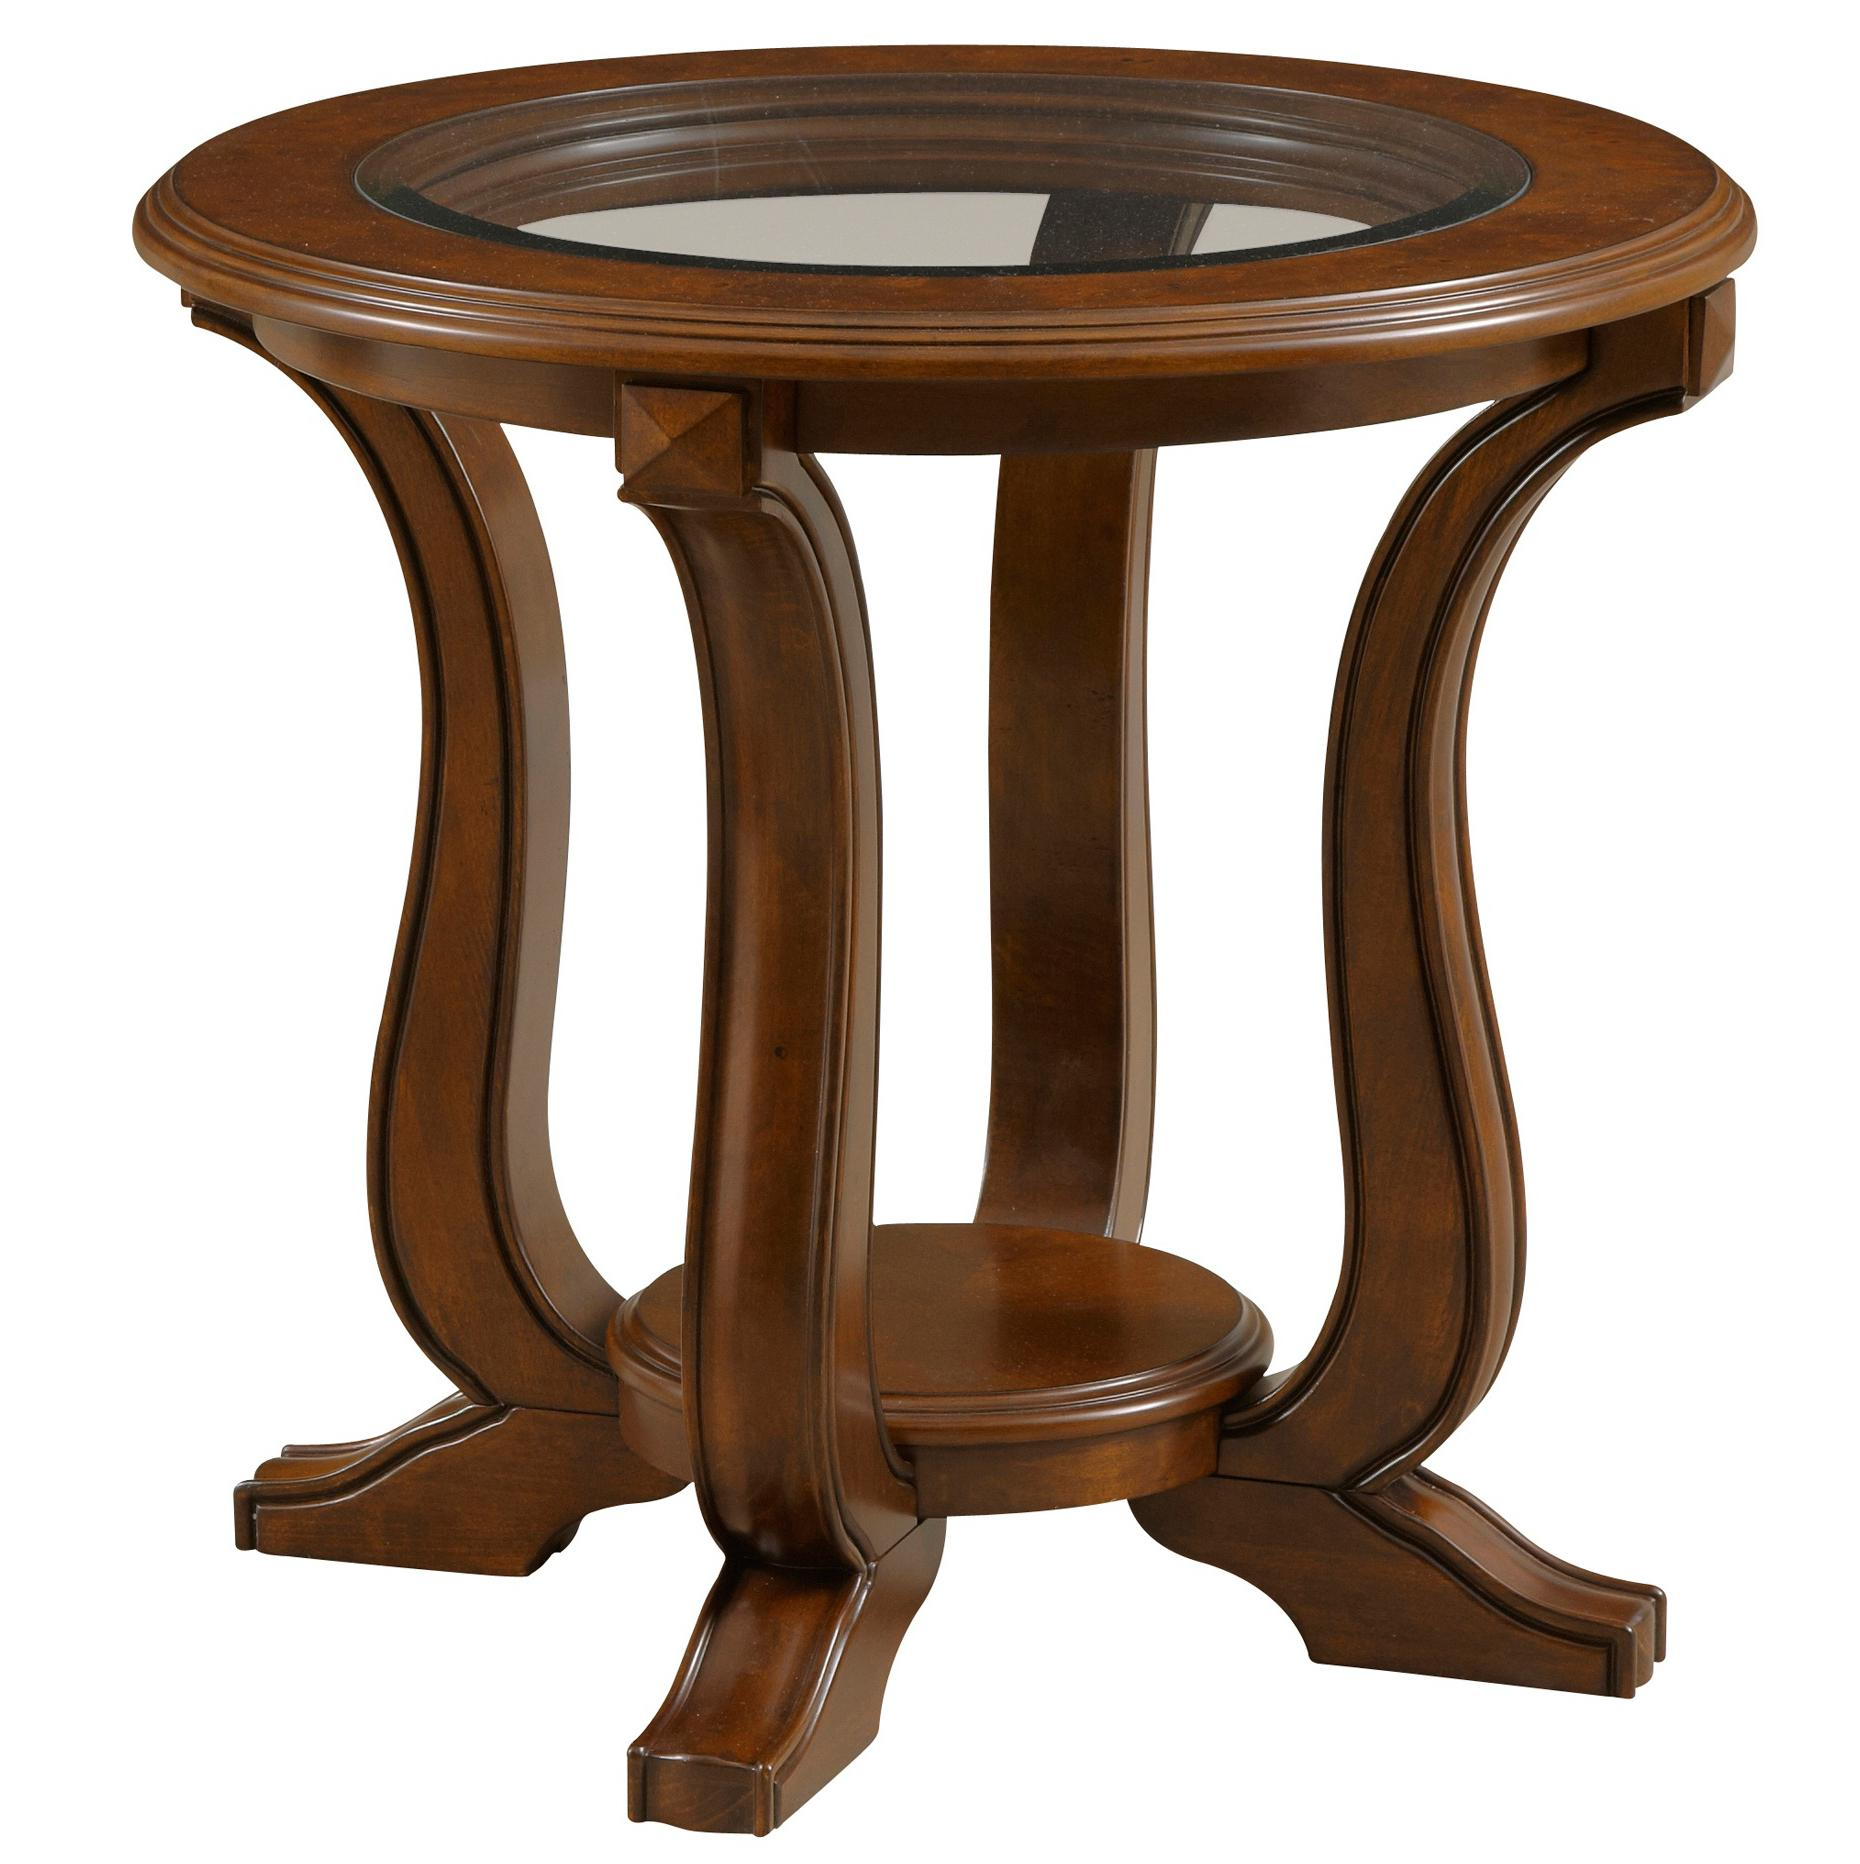 Broyhill Furniture Lana Round End Table - Item Number: 3459-002